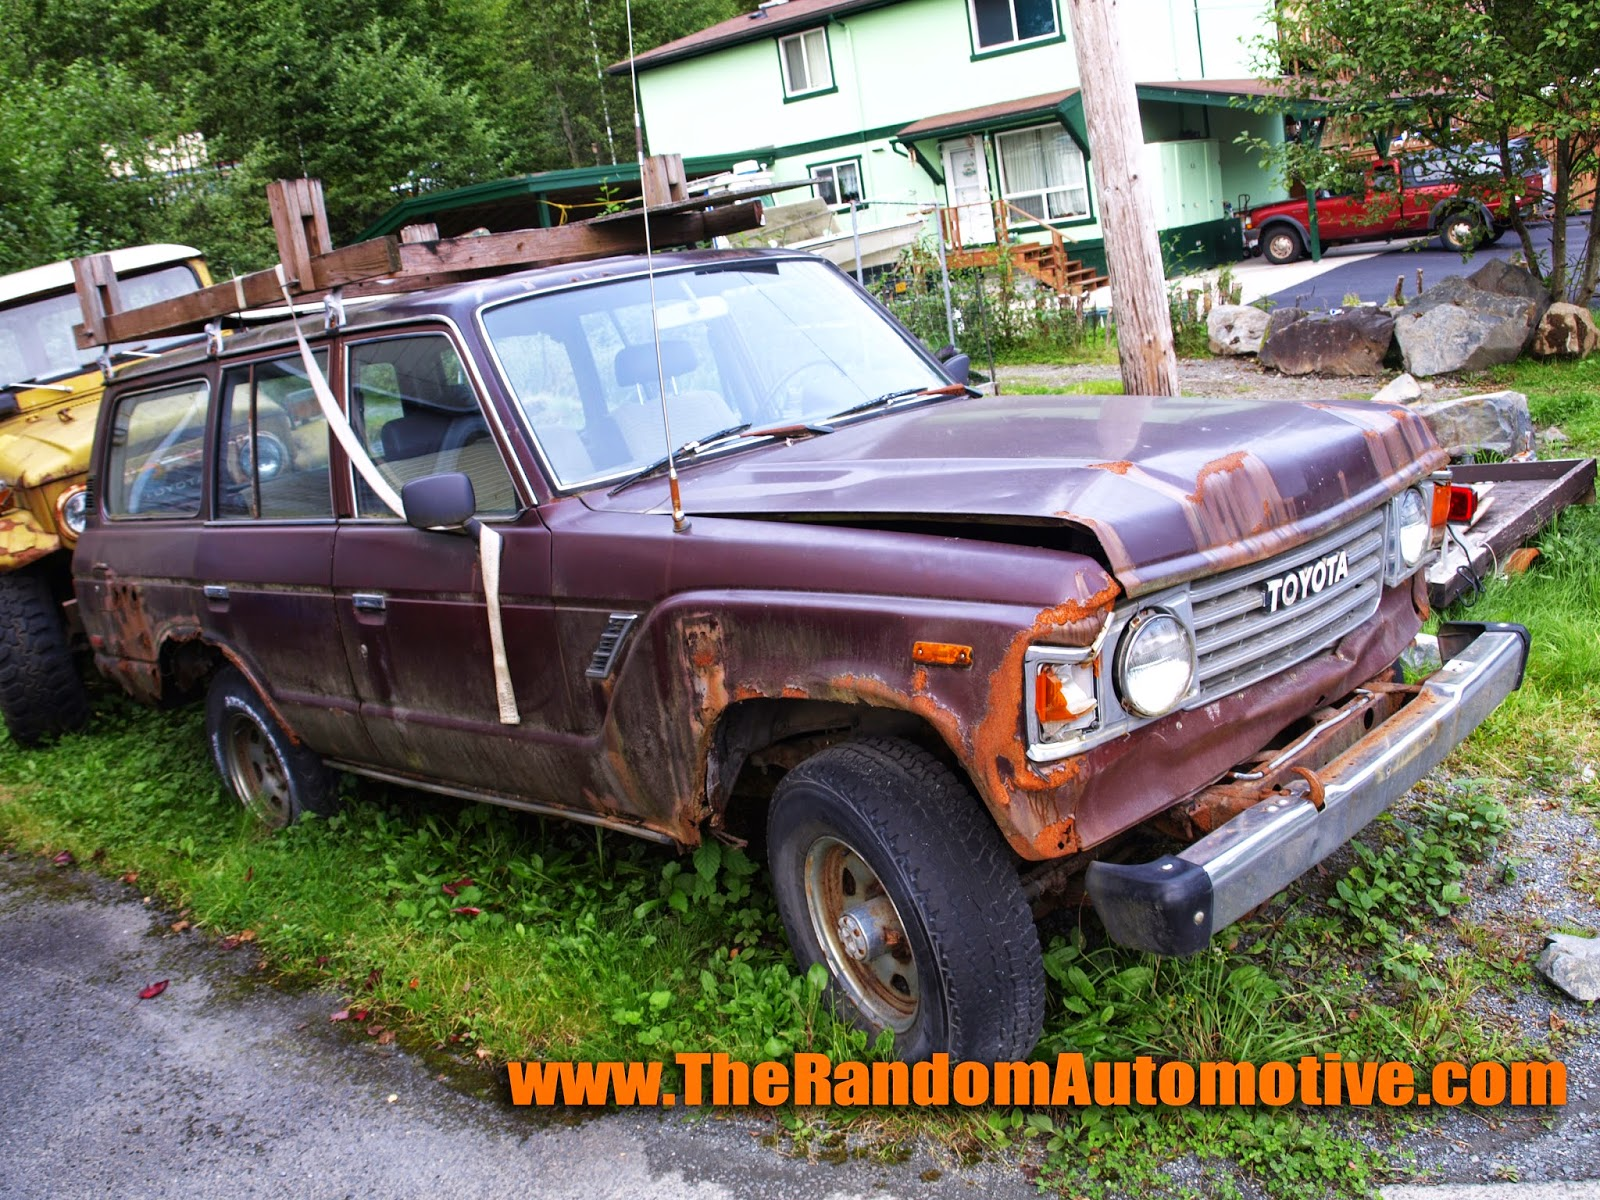 1980s toyota land cruiser abandoned alaska rust